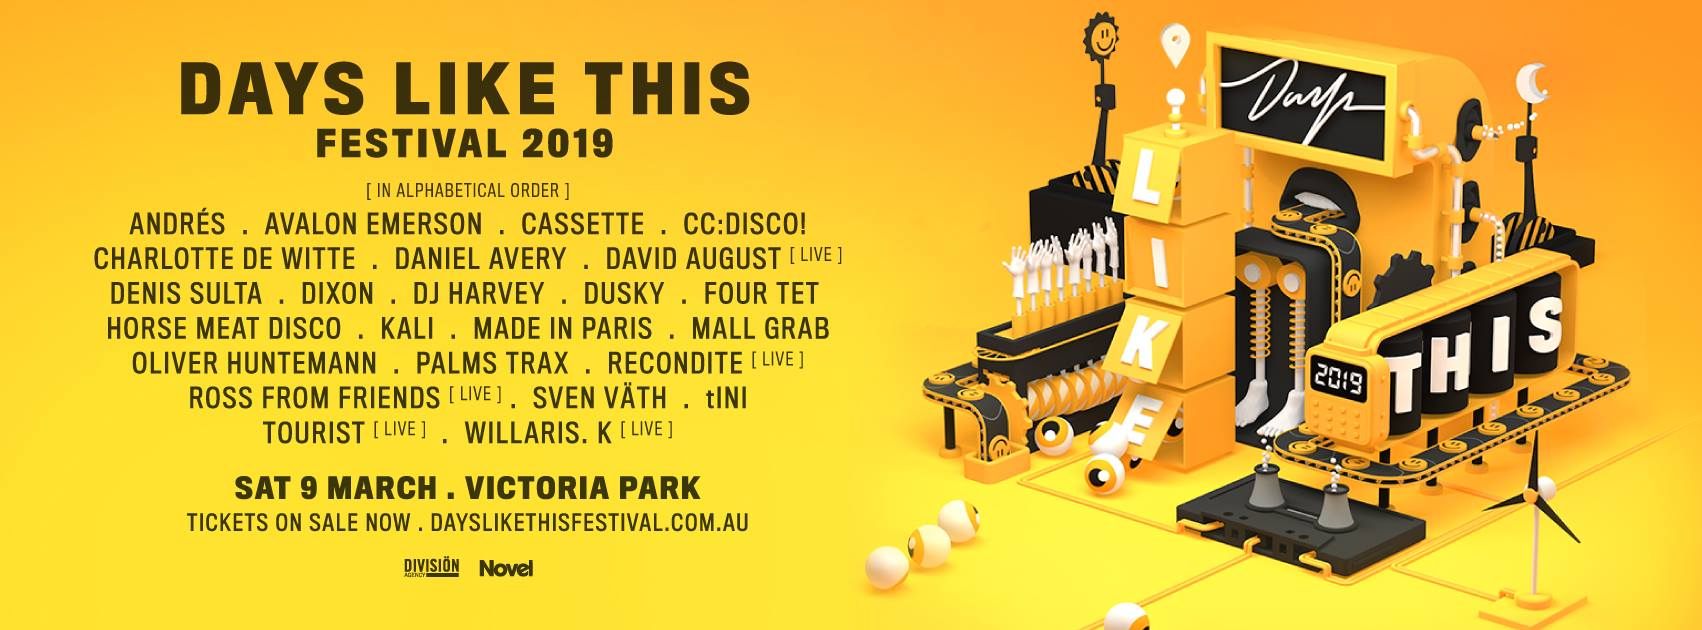 Catch Avalon Emerson at Days Like This 2019 - Sat 9th March, Sydney.